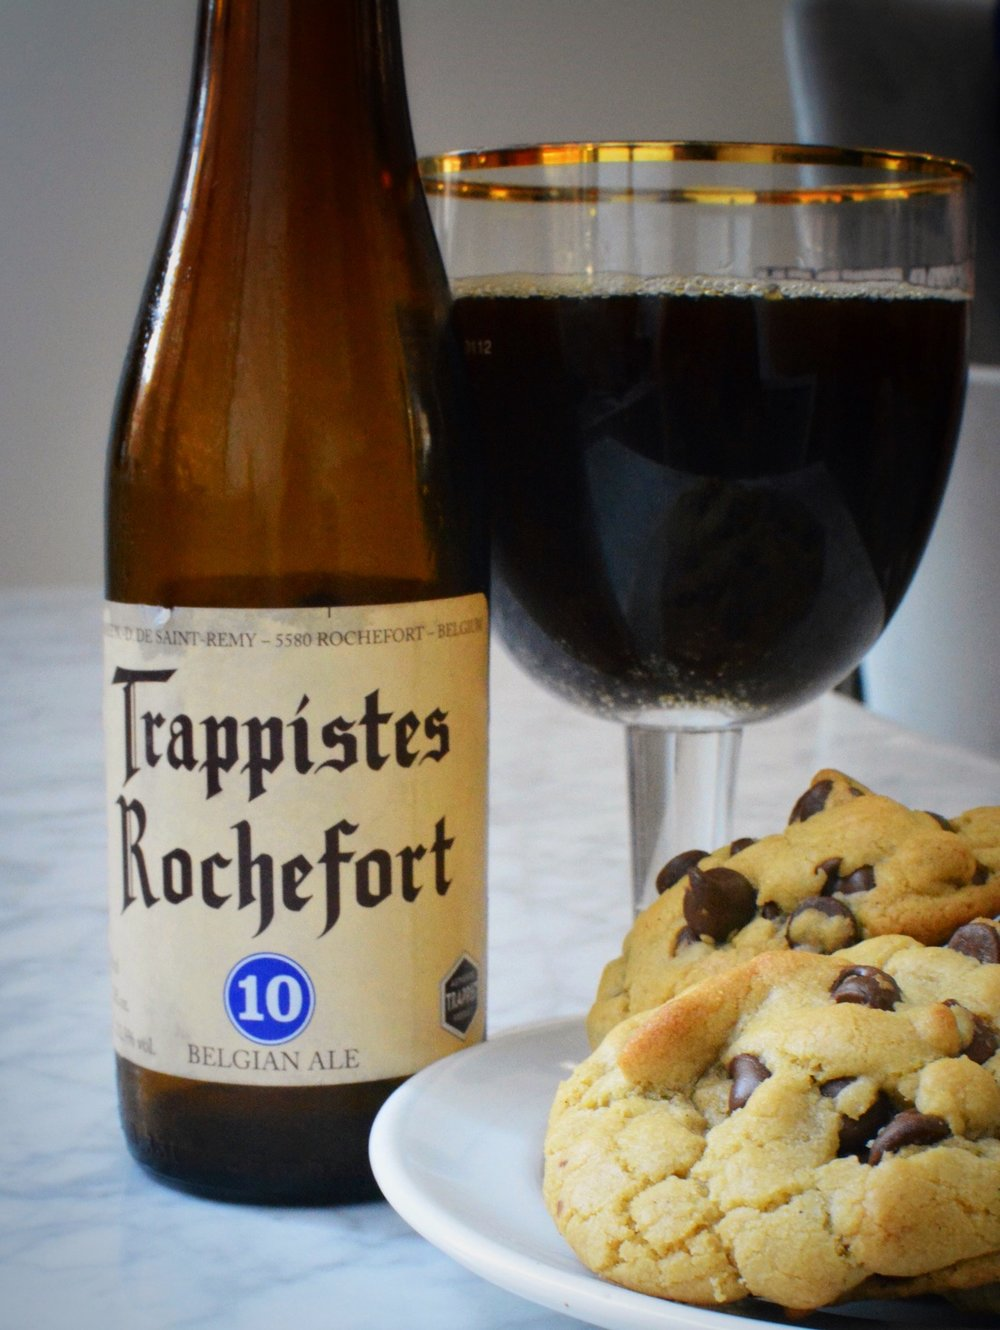 Trappistes-Rochefort-chocolate-cookie-pair.jpg